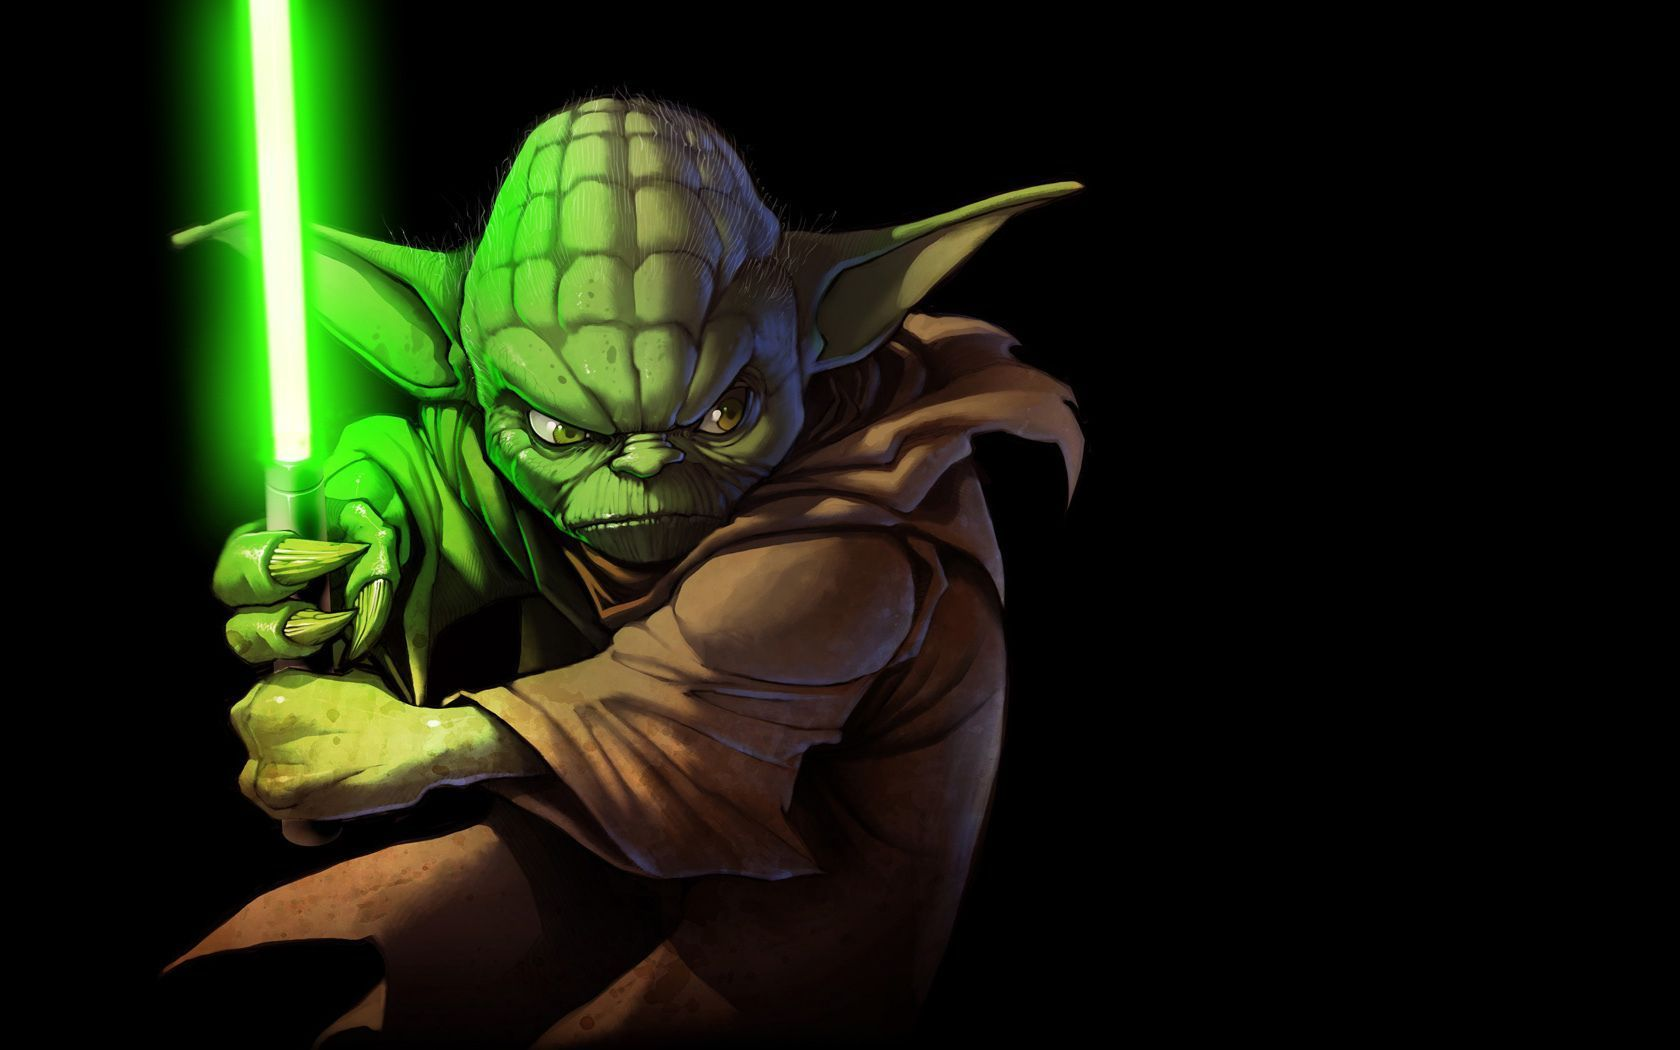 star wars wallpaper hd yoda HD WALLPAPER WIDE